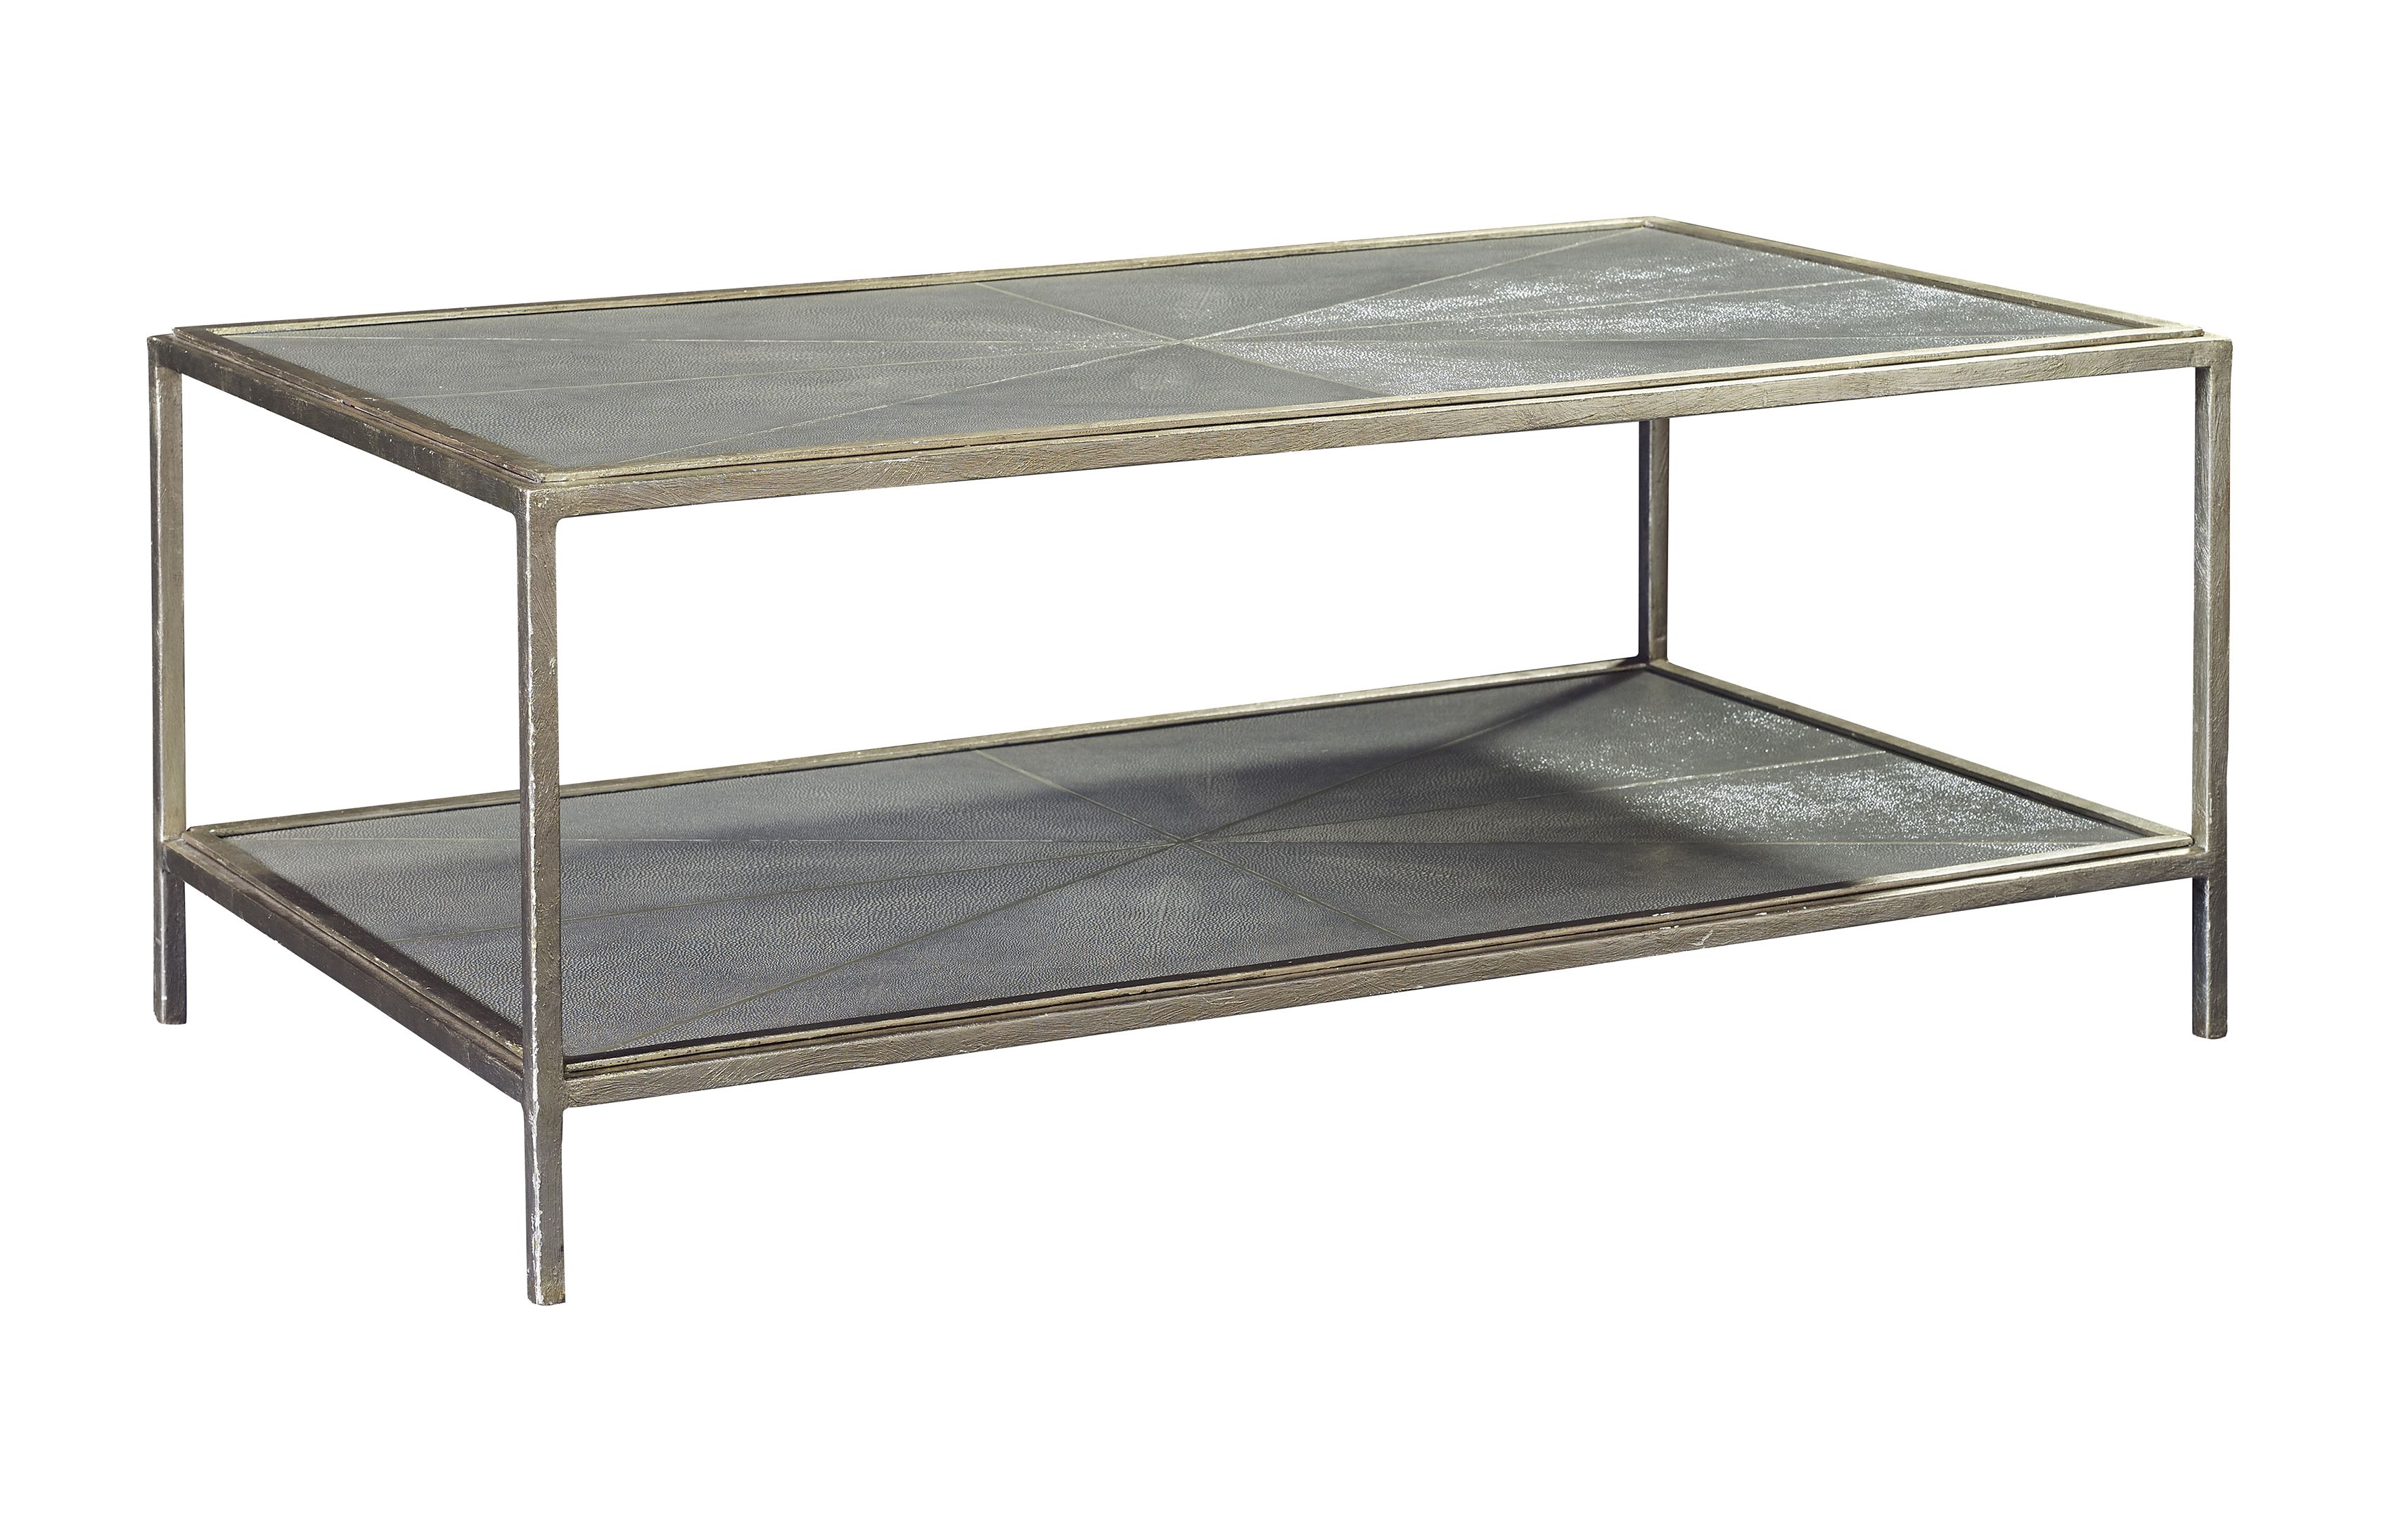 Charcoal Shagreen Cocktail Table Inspired By French Art Deco Pieces Of The  20u0027s And 30u0027s, This Stylish Cocktail Table Features A Rectangular Shaped  Top And ...